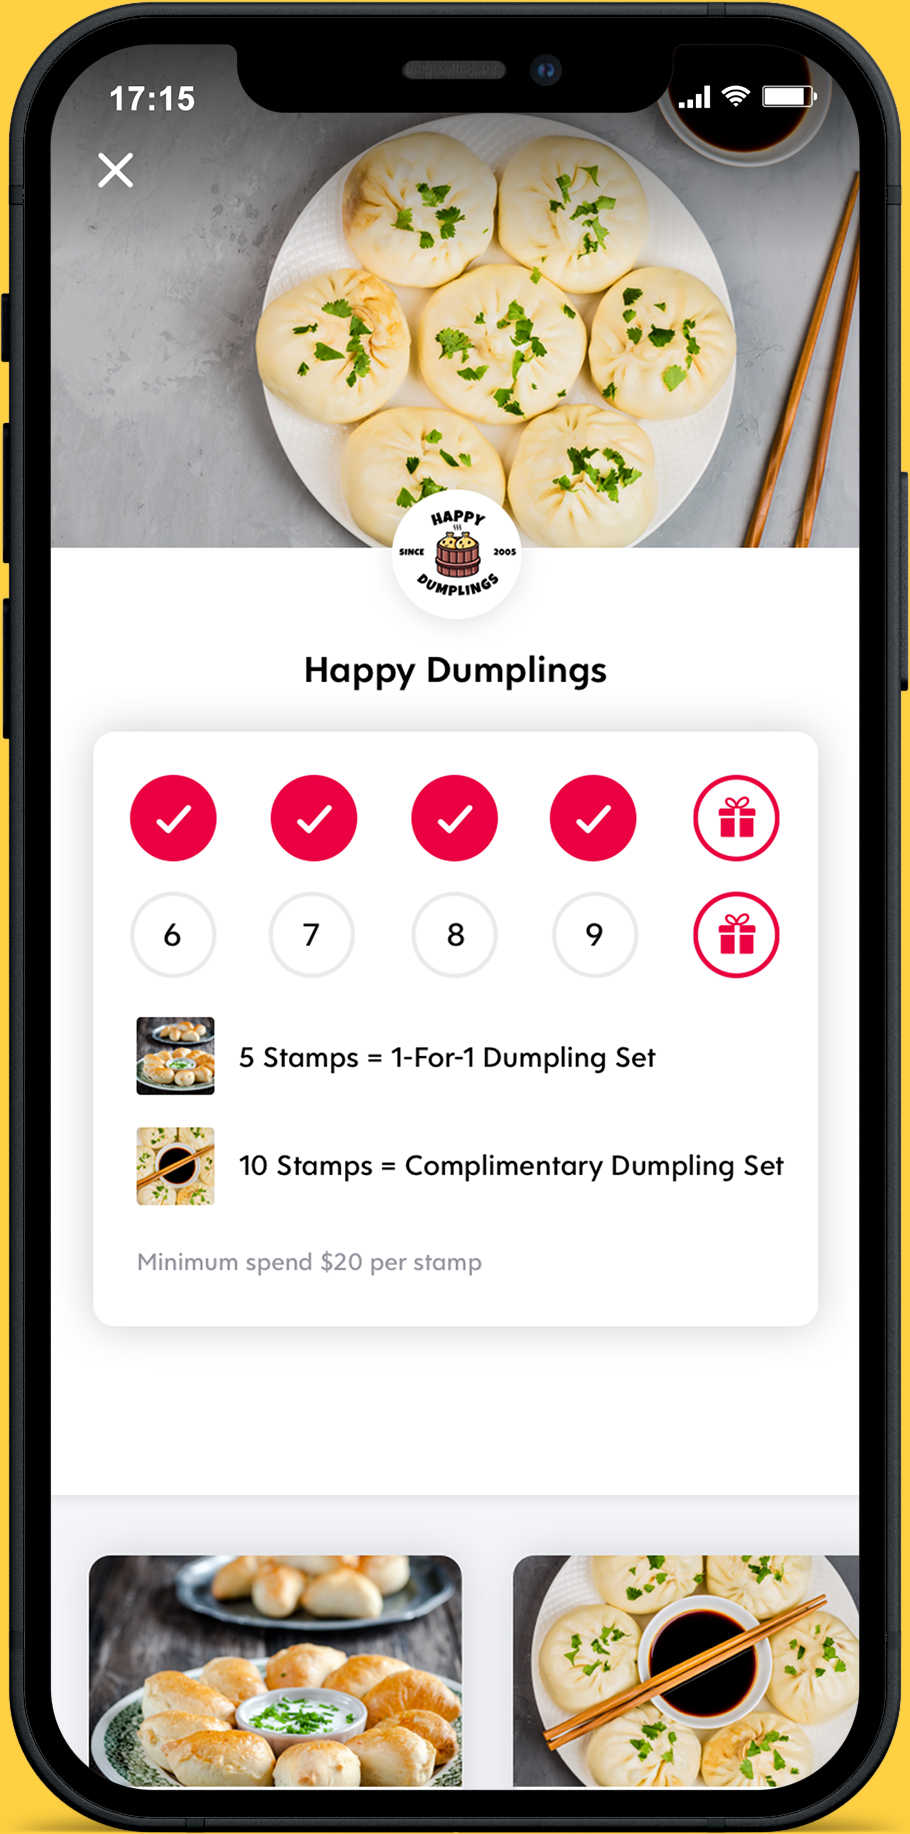 Screenshot of Flex Rewards Loyalty Stamp Card for Happy Dumplings Chinese Restaurant